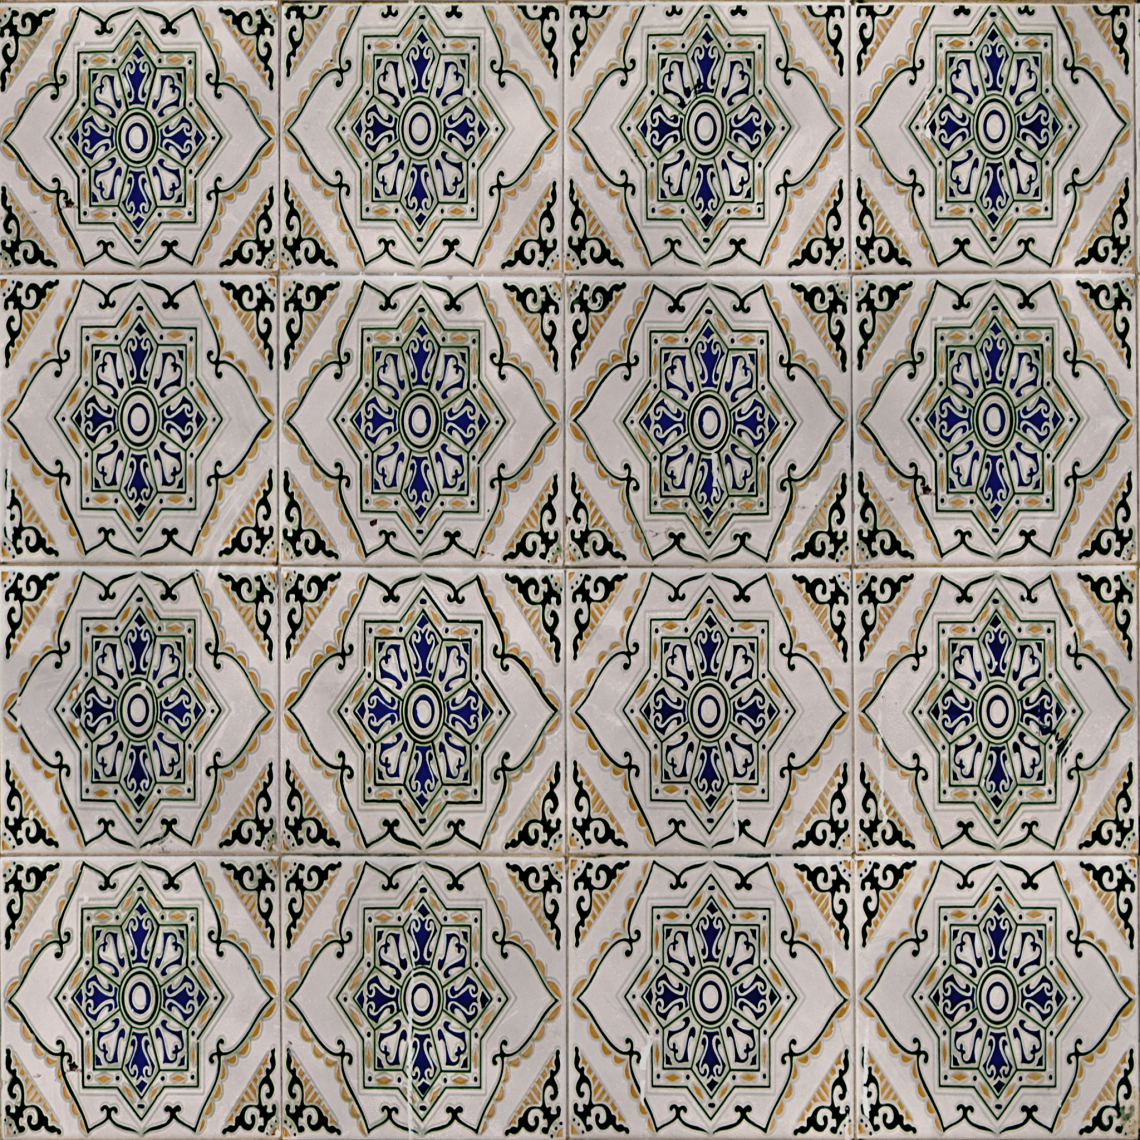 Ornate-Tiles-01-Albedo - Seamless